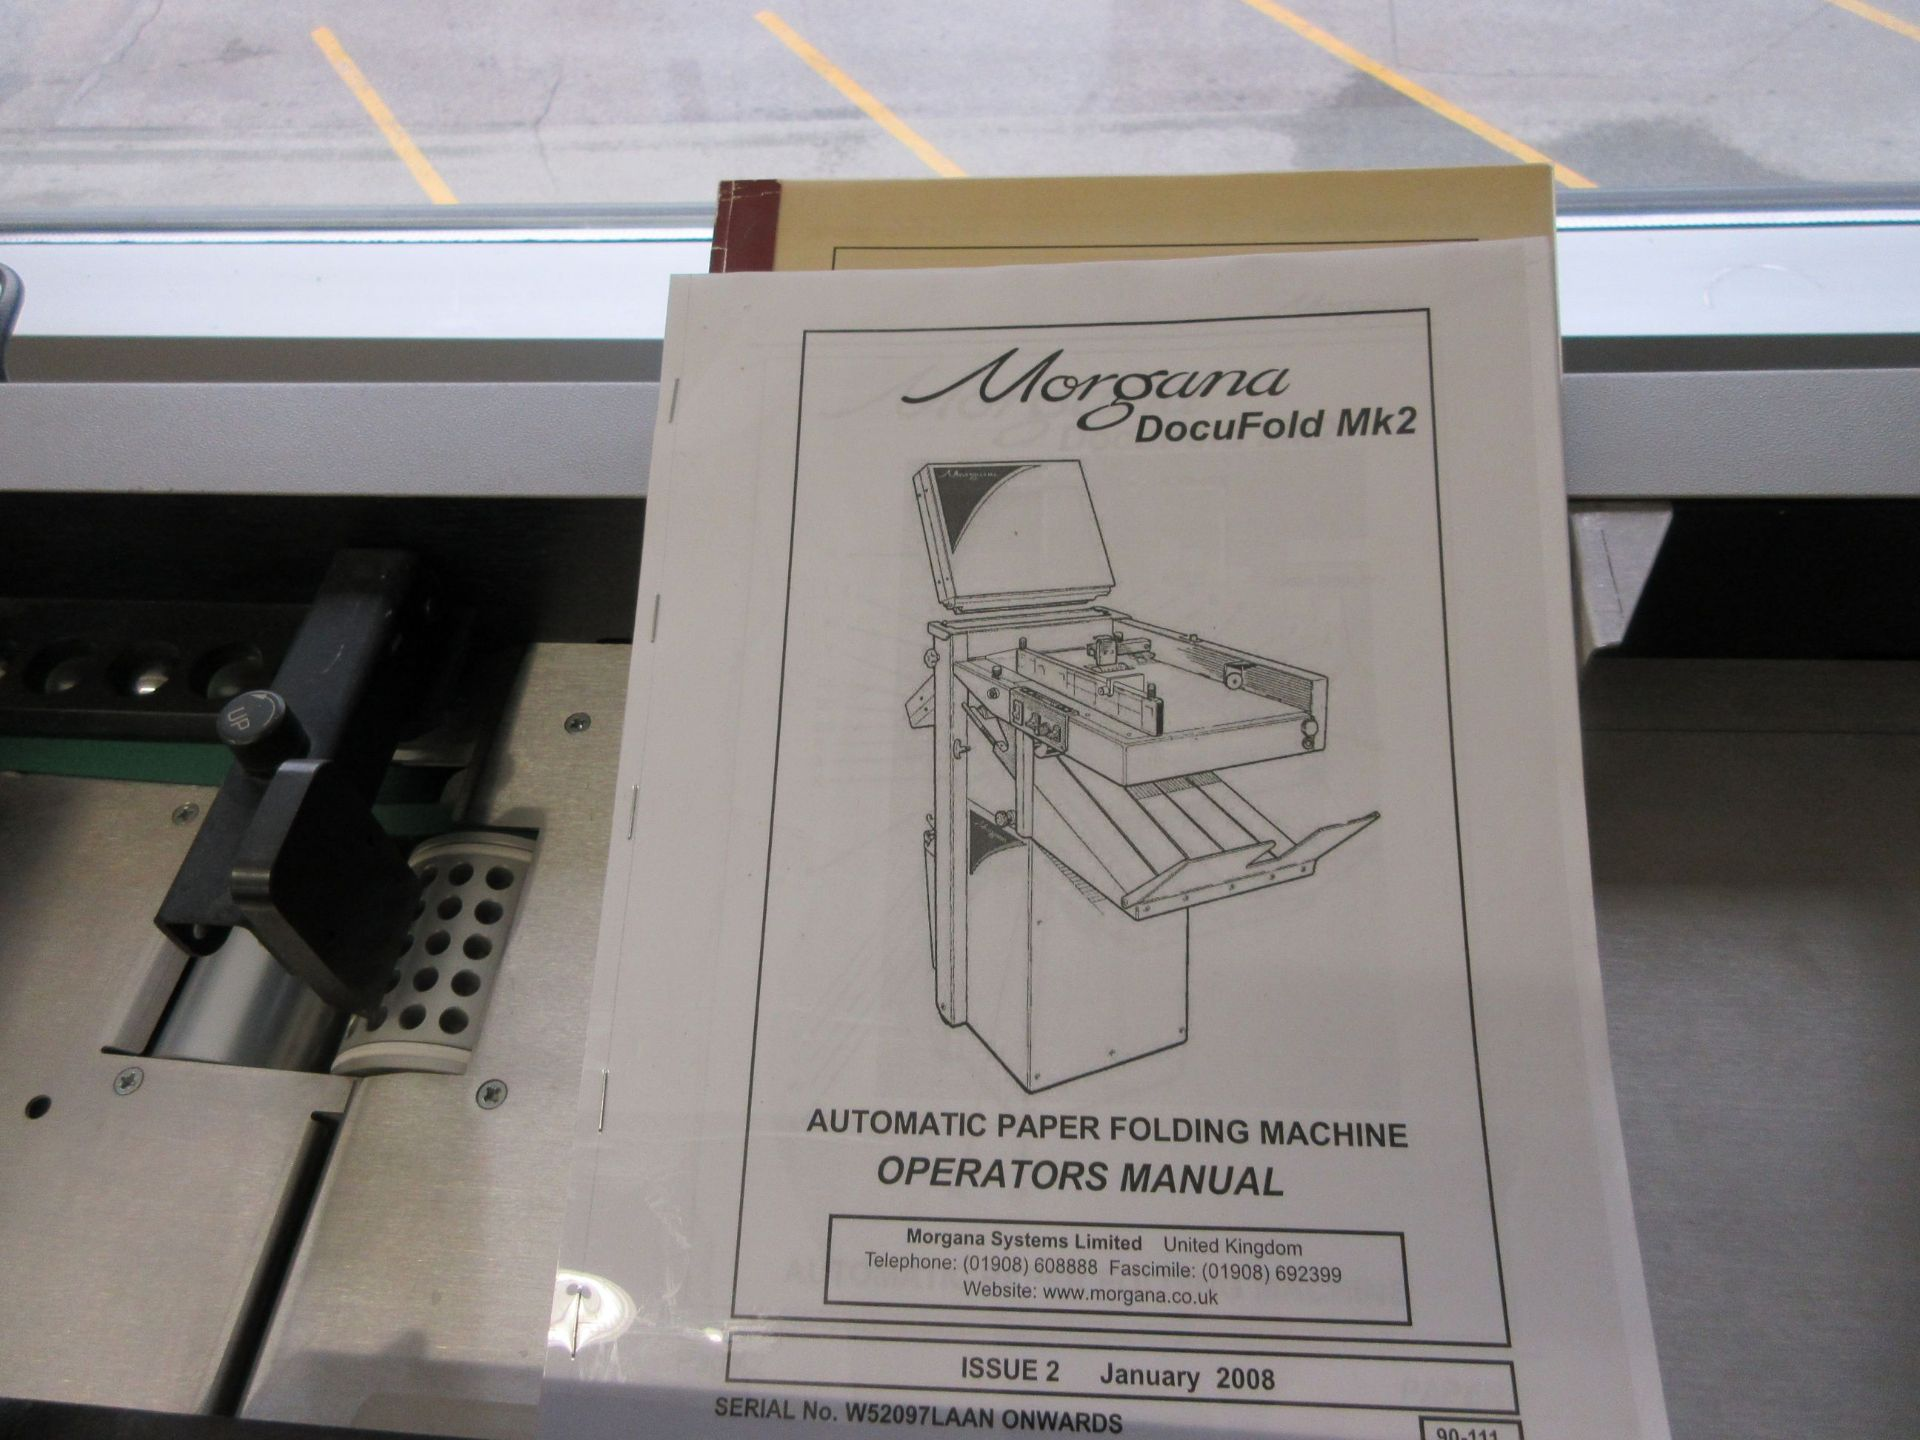 "MORGANA Docufold MK2 automatic paper folding machine 12"" x 18"" - Image 6 of 6"